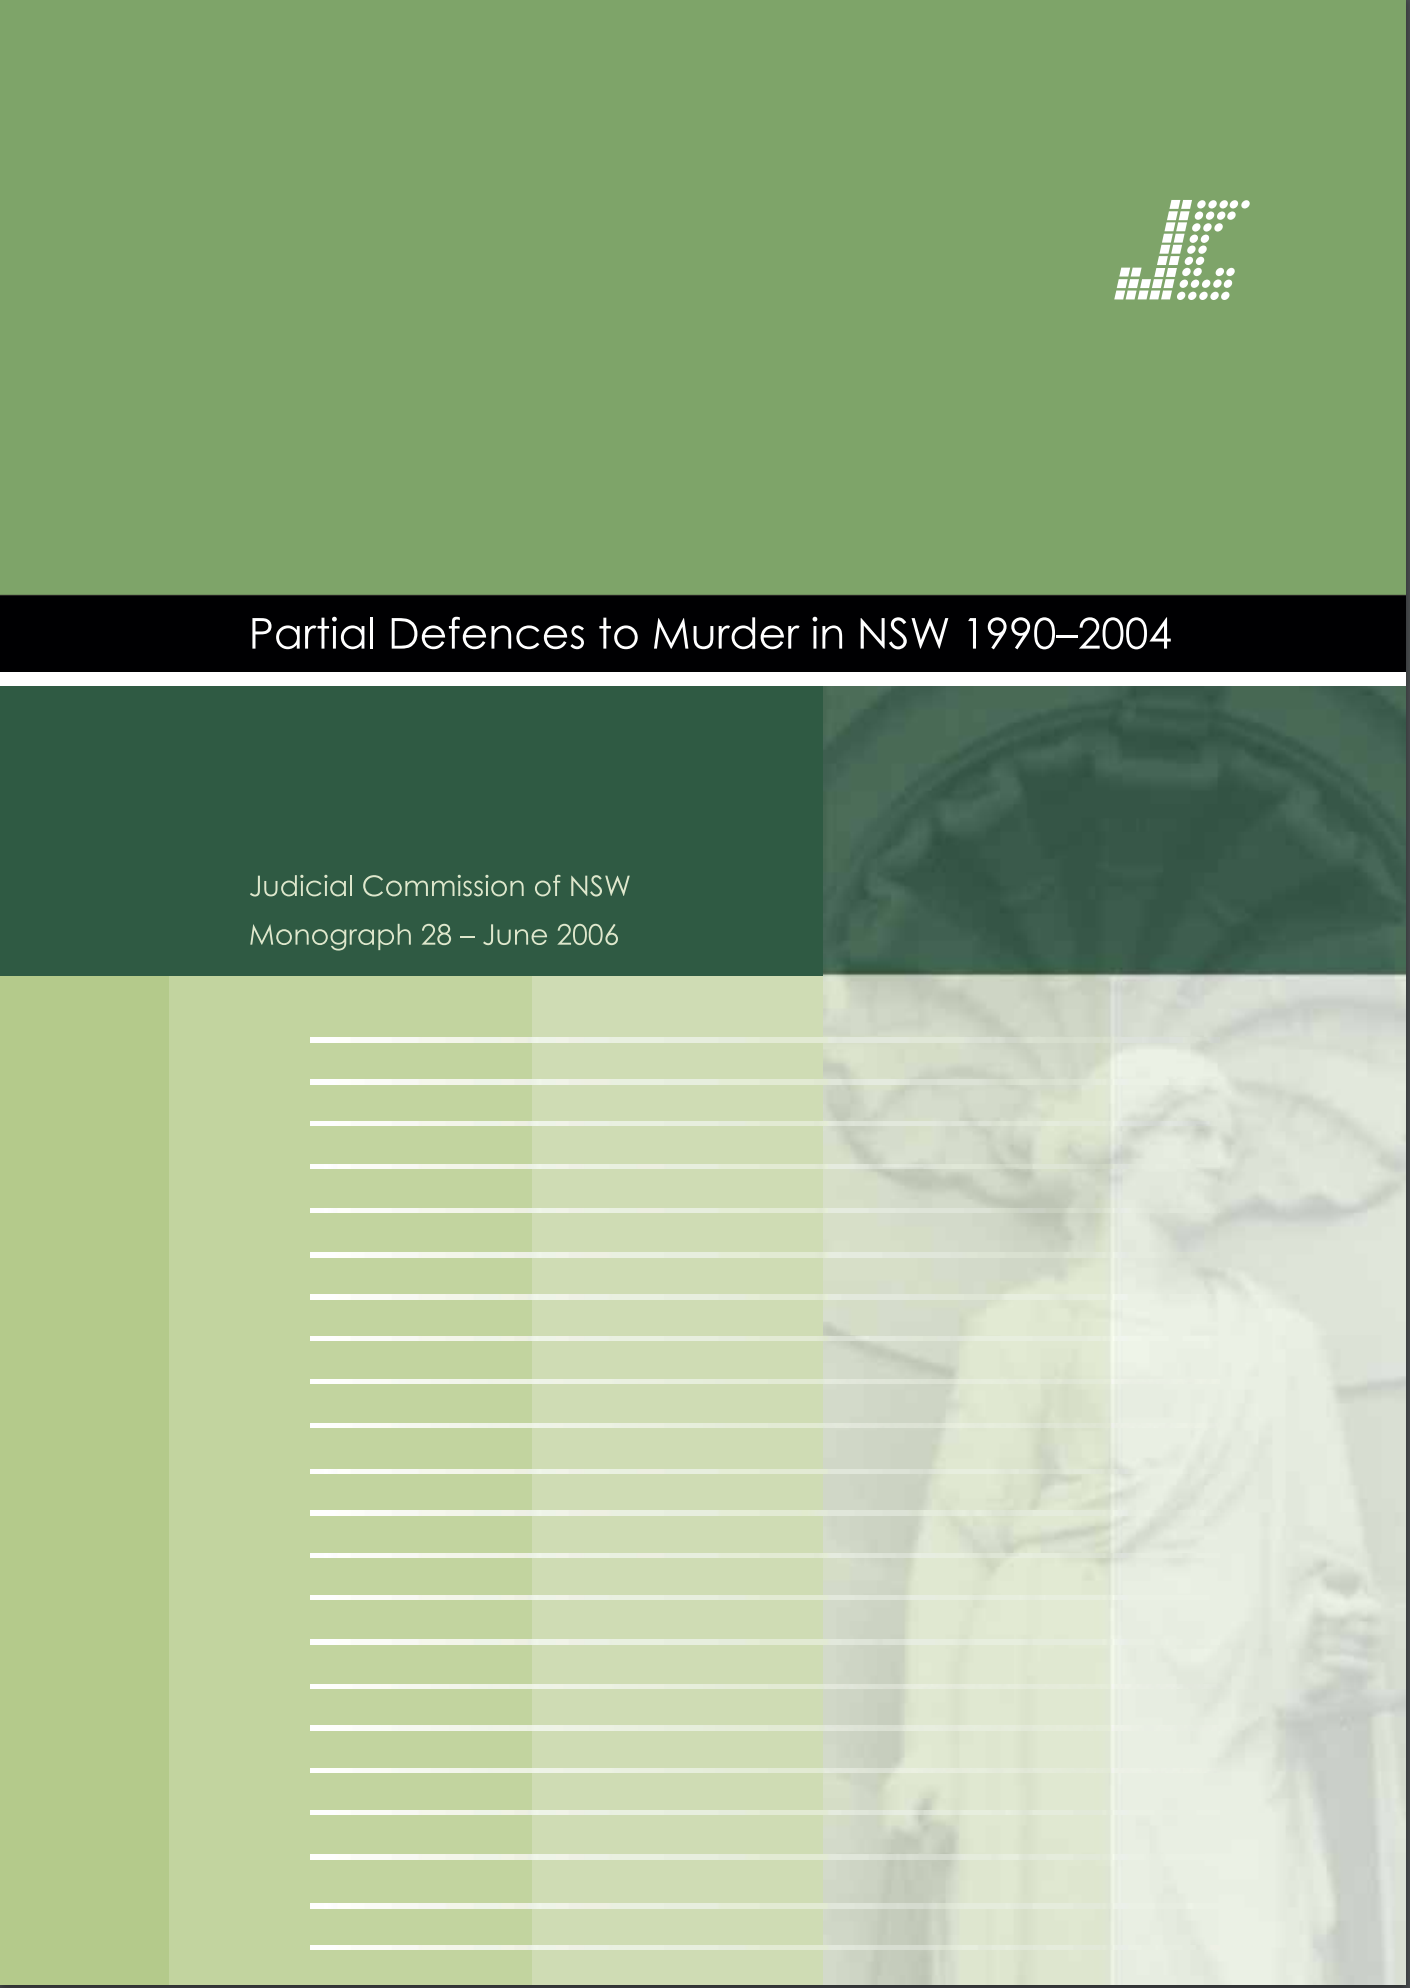 Monograph 28 Cover - Partial Defences To Murder In NSW 1990-2004